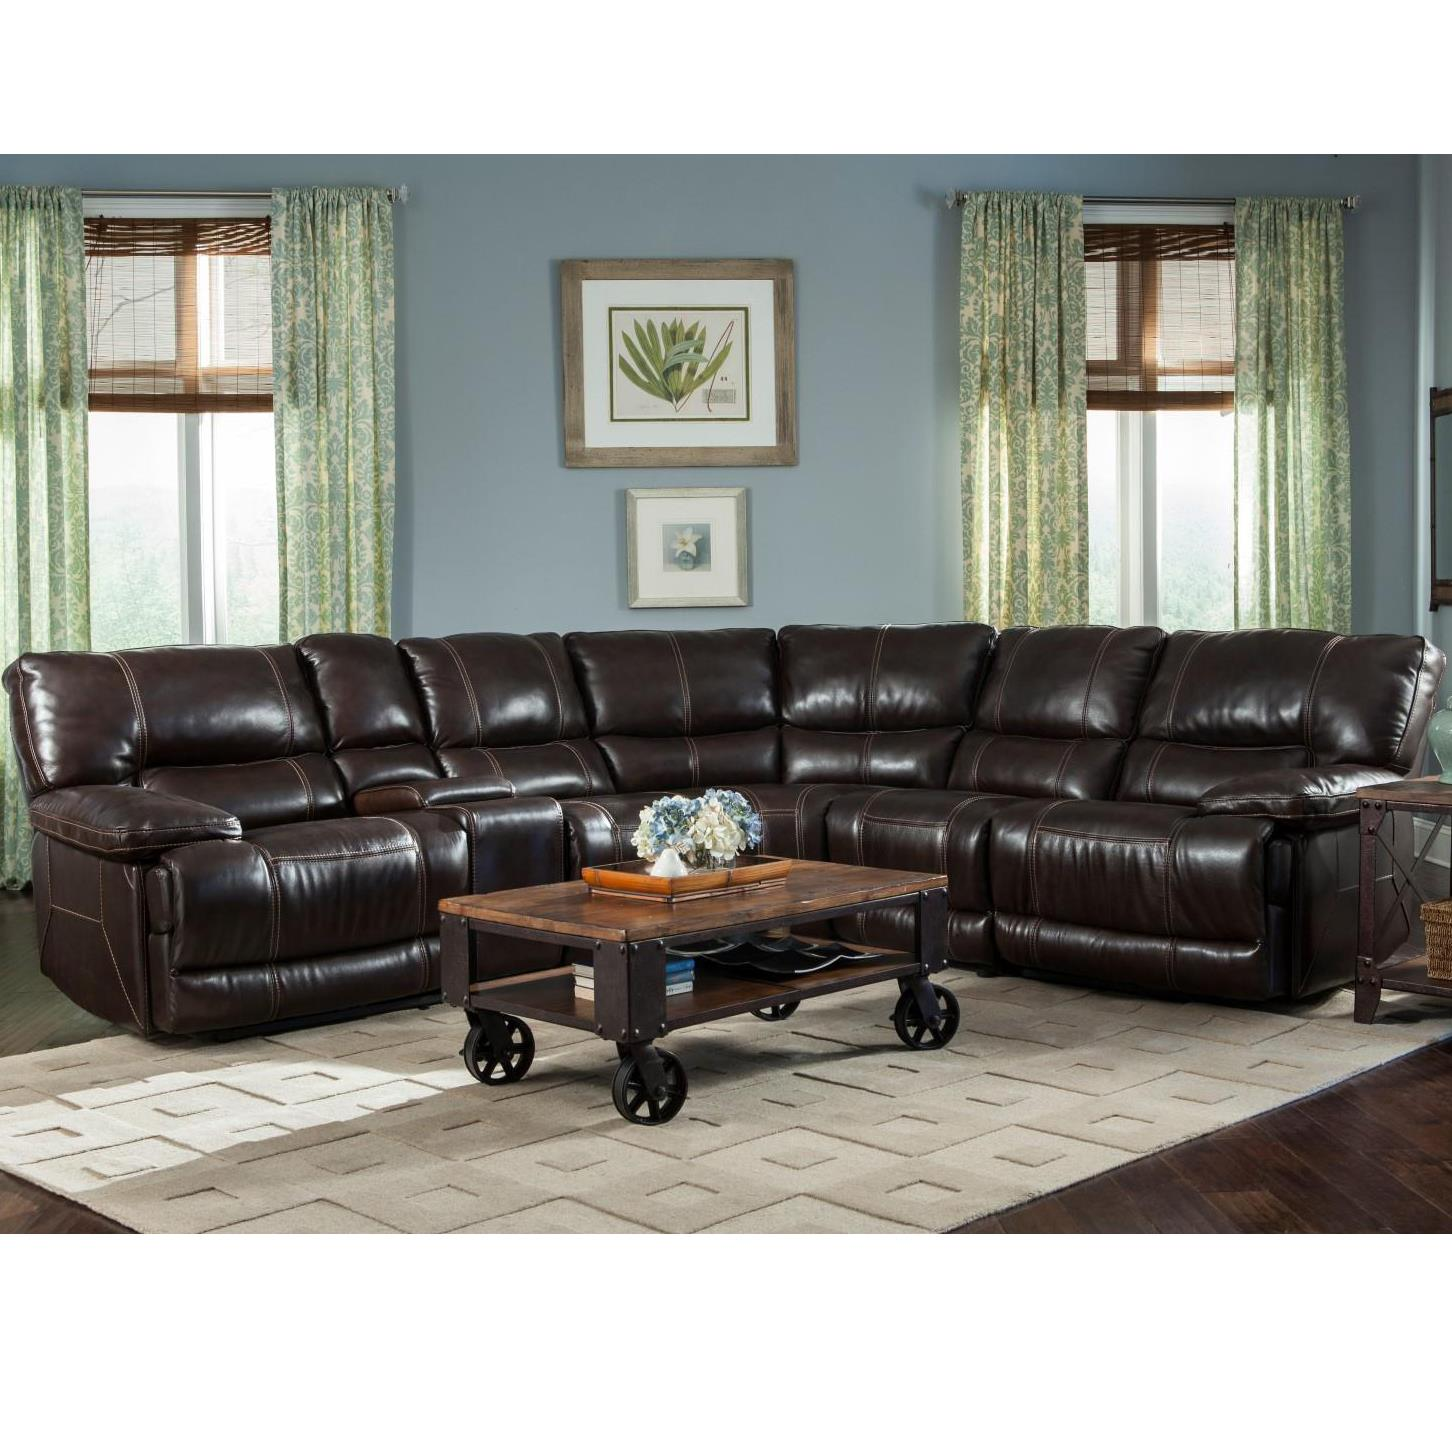 Parker Living Socrates Casual Sectional with Storage Console - Item Number: MS-811LP+860+810P+850+840+811RP-MI